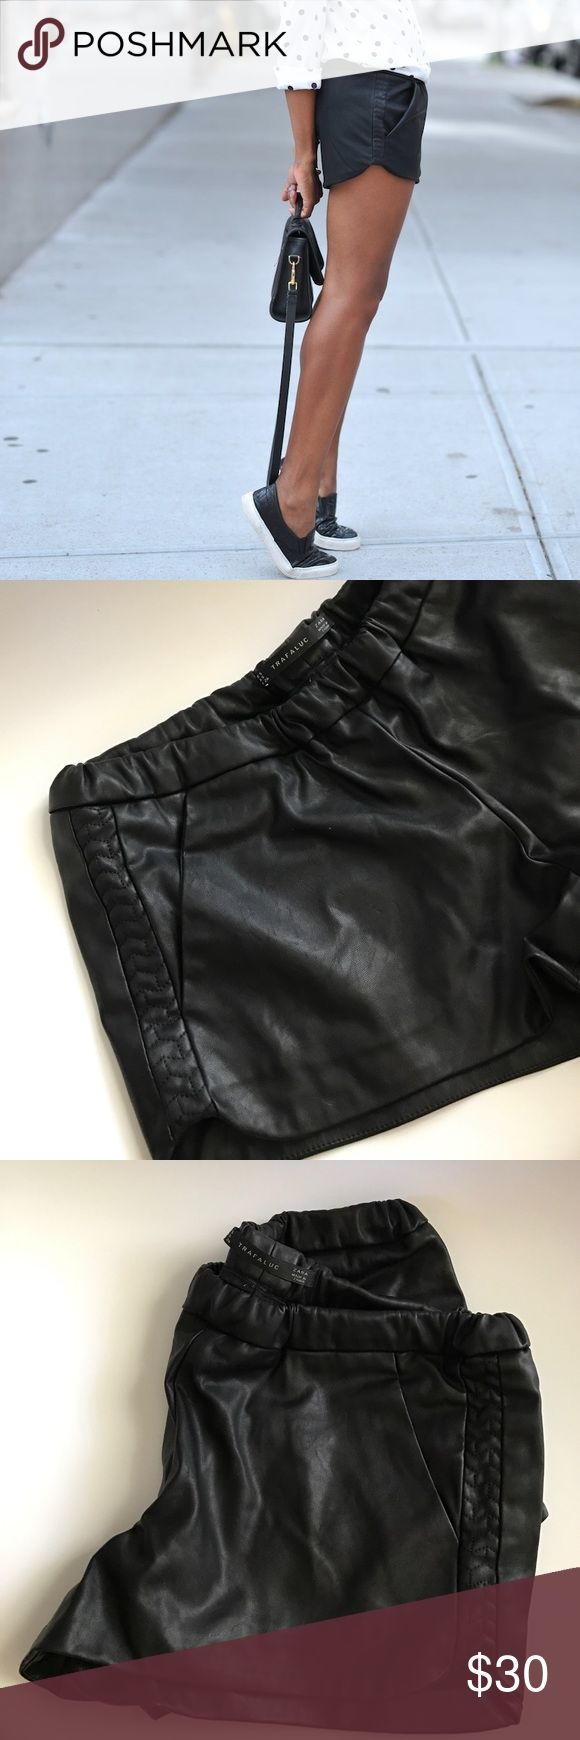 Zara Trafuluc Faux Leather Shorts Faux leather jogger shorts. Dress up or down. Excellent condition! Cozy and chic at the same time. No trades, no PayPal. Zara Shorts